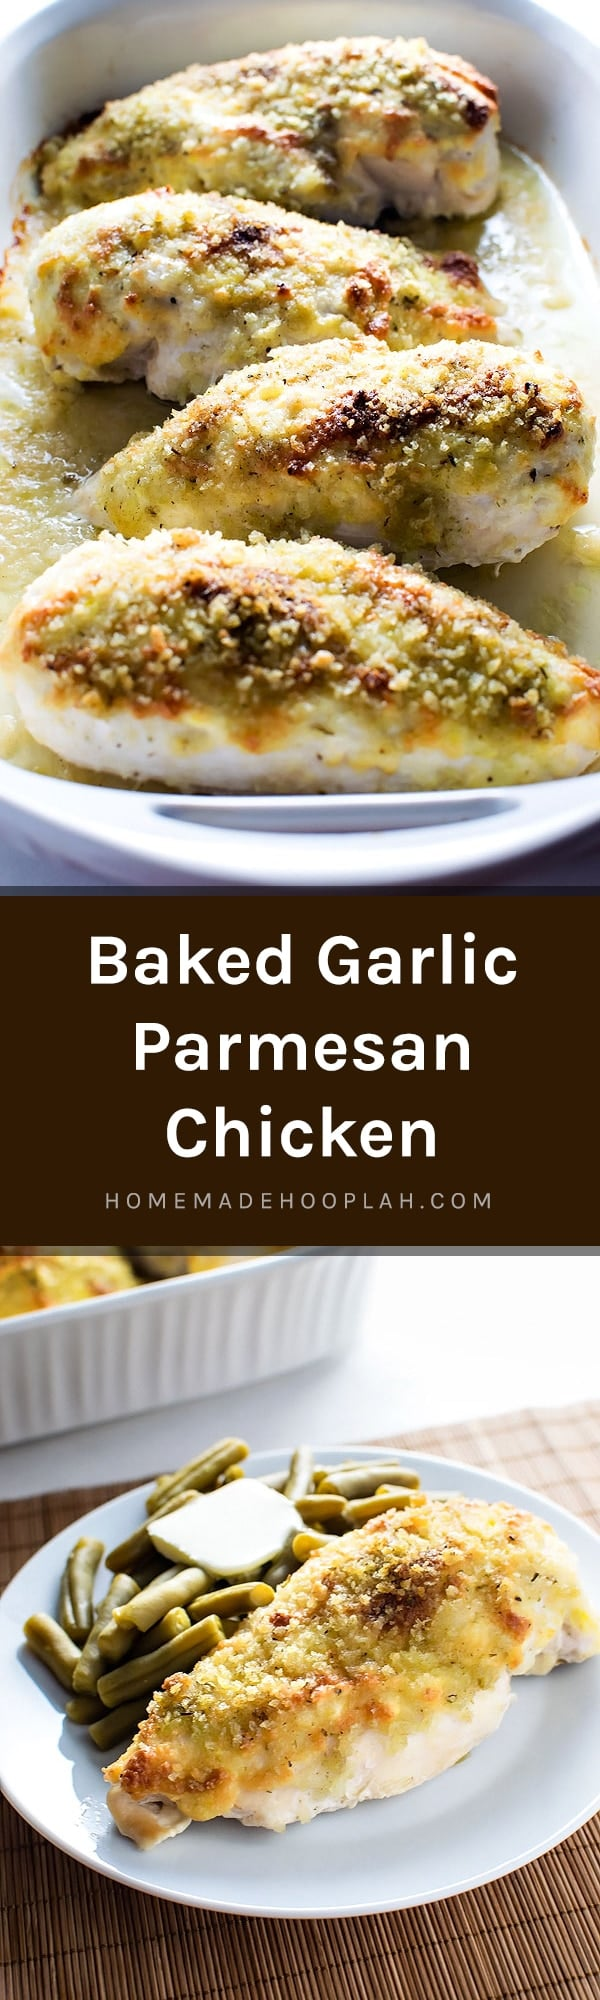 ... parmesan oven baked garlic chicken baked garlic parmesan chicken